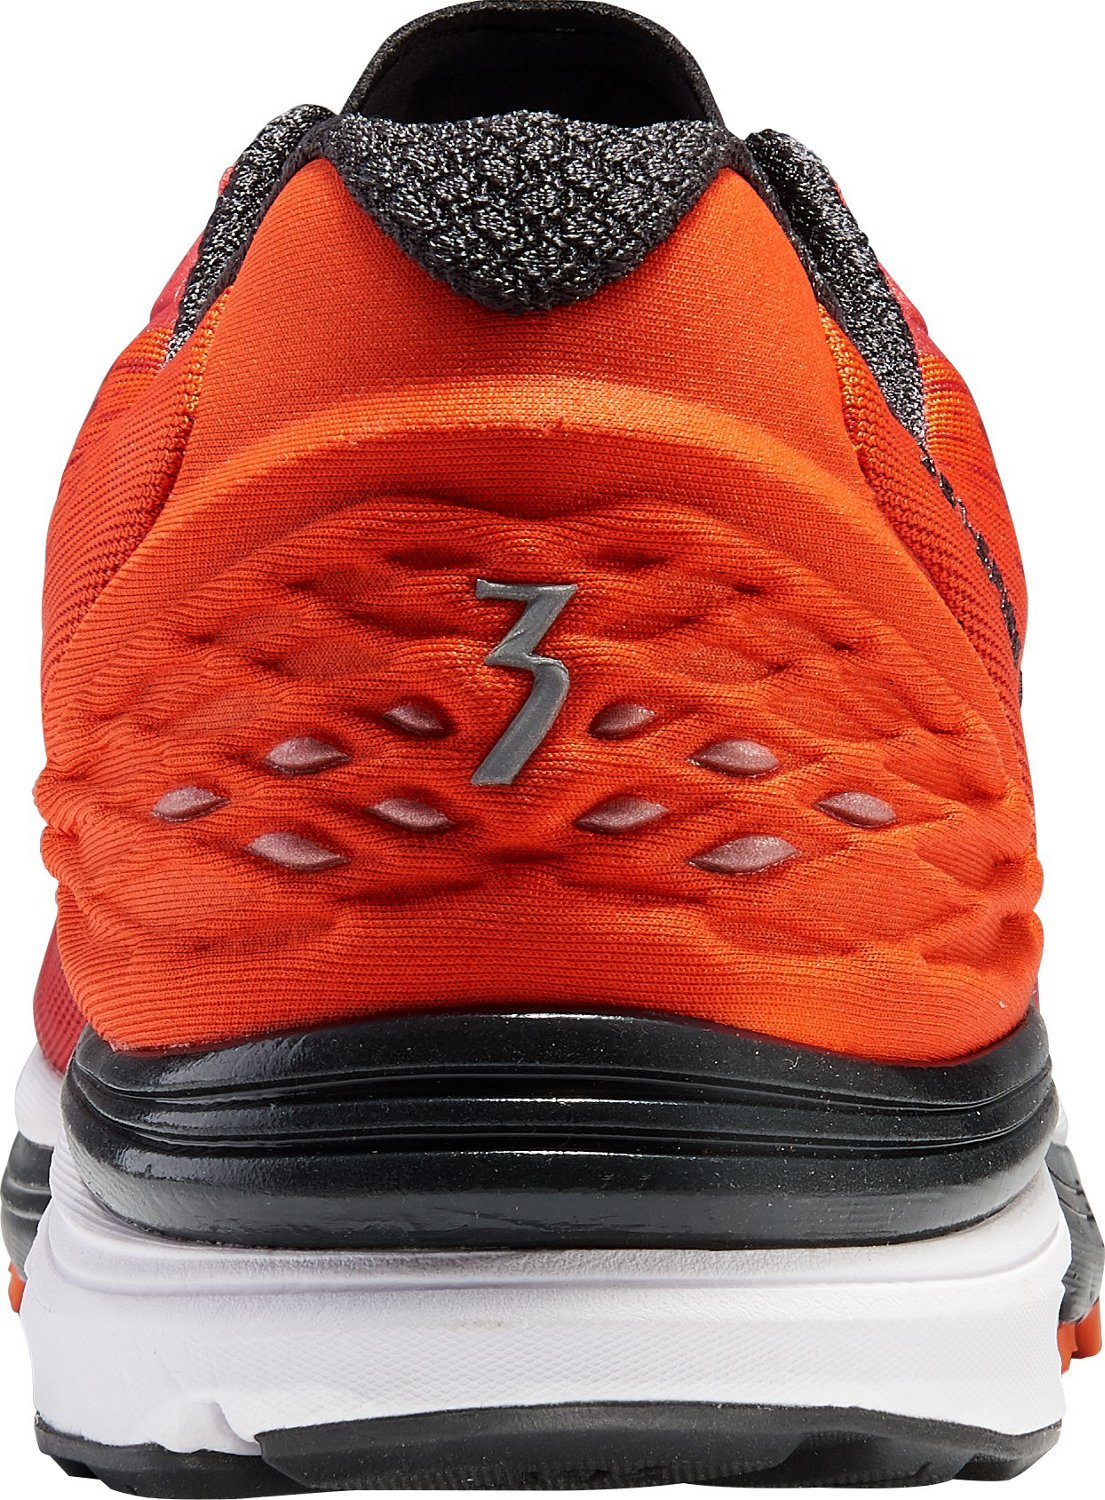 361 Men's Spire 3 Running Shoes - view number 6